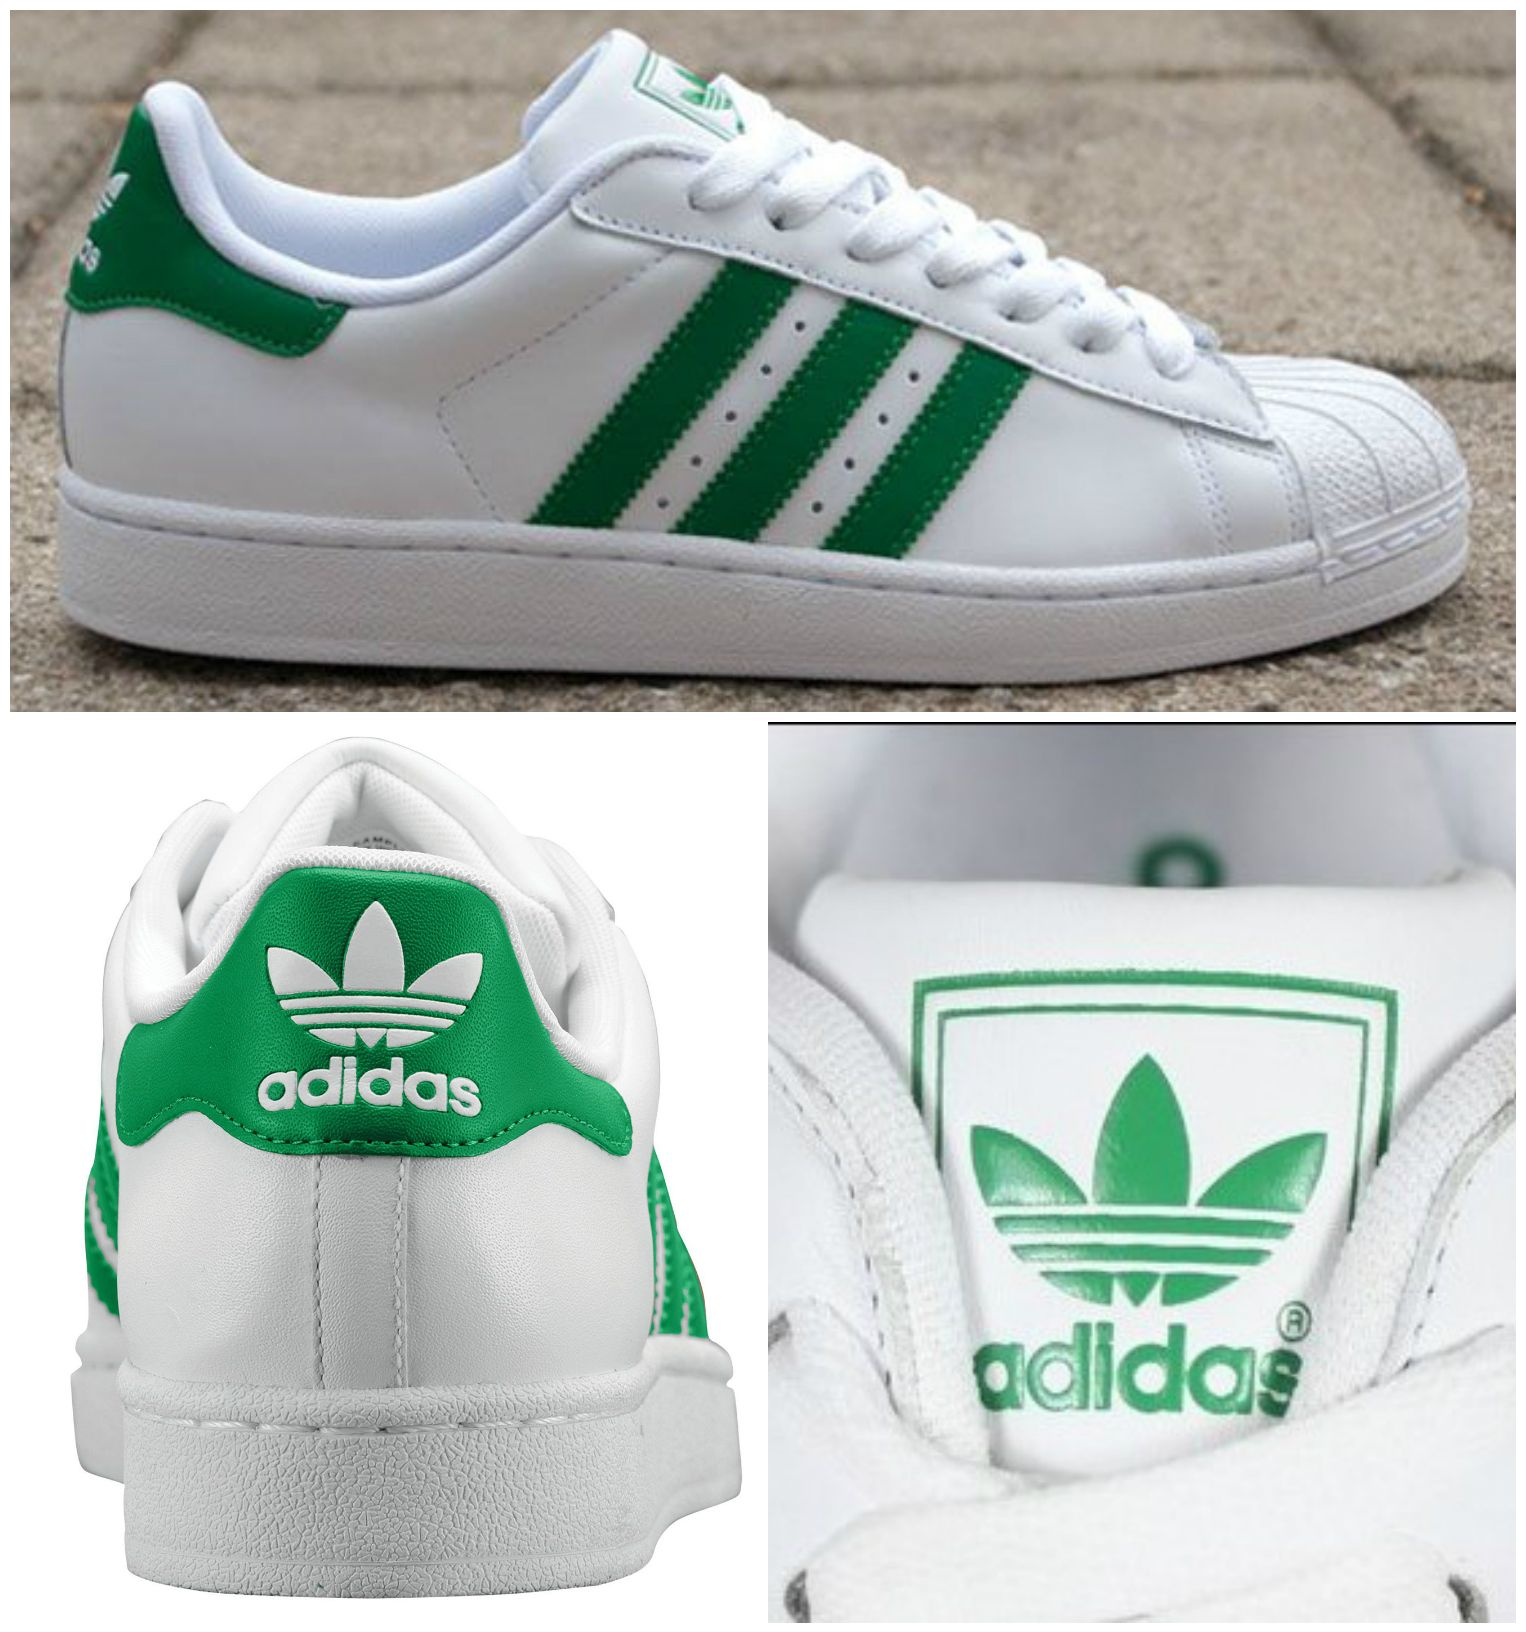 Pin de y bonitosZapatillas en AdidasZapatos Its'anne iukZPX